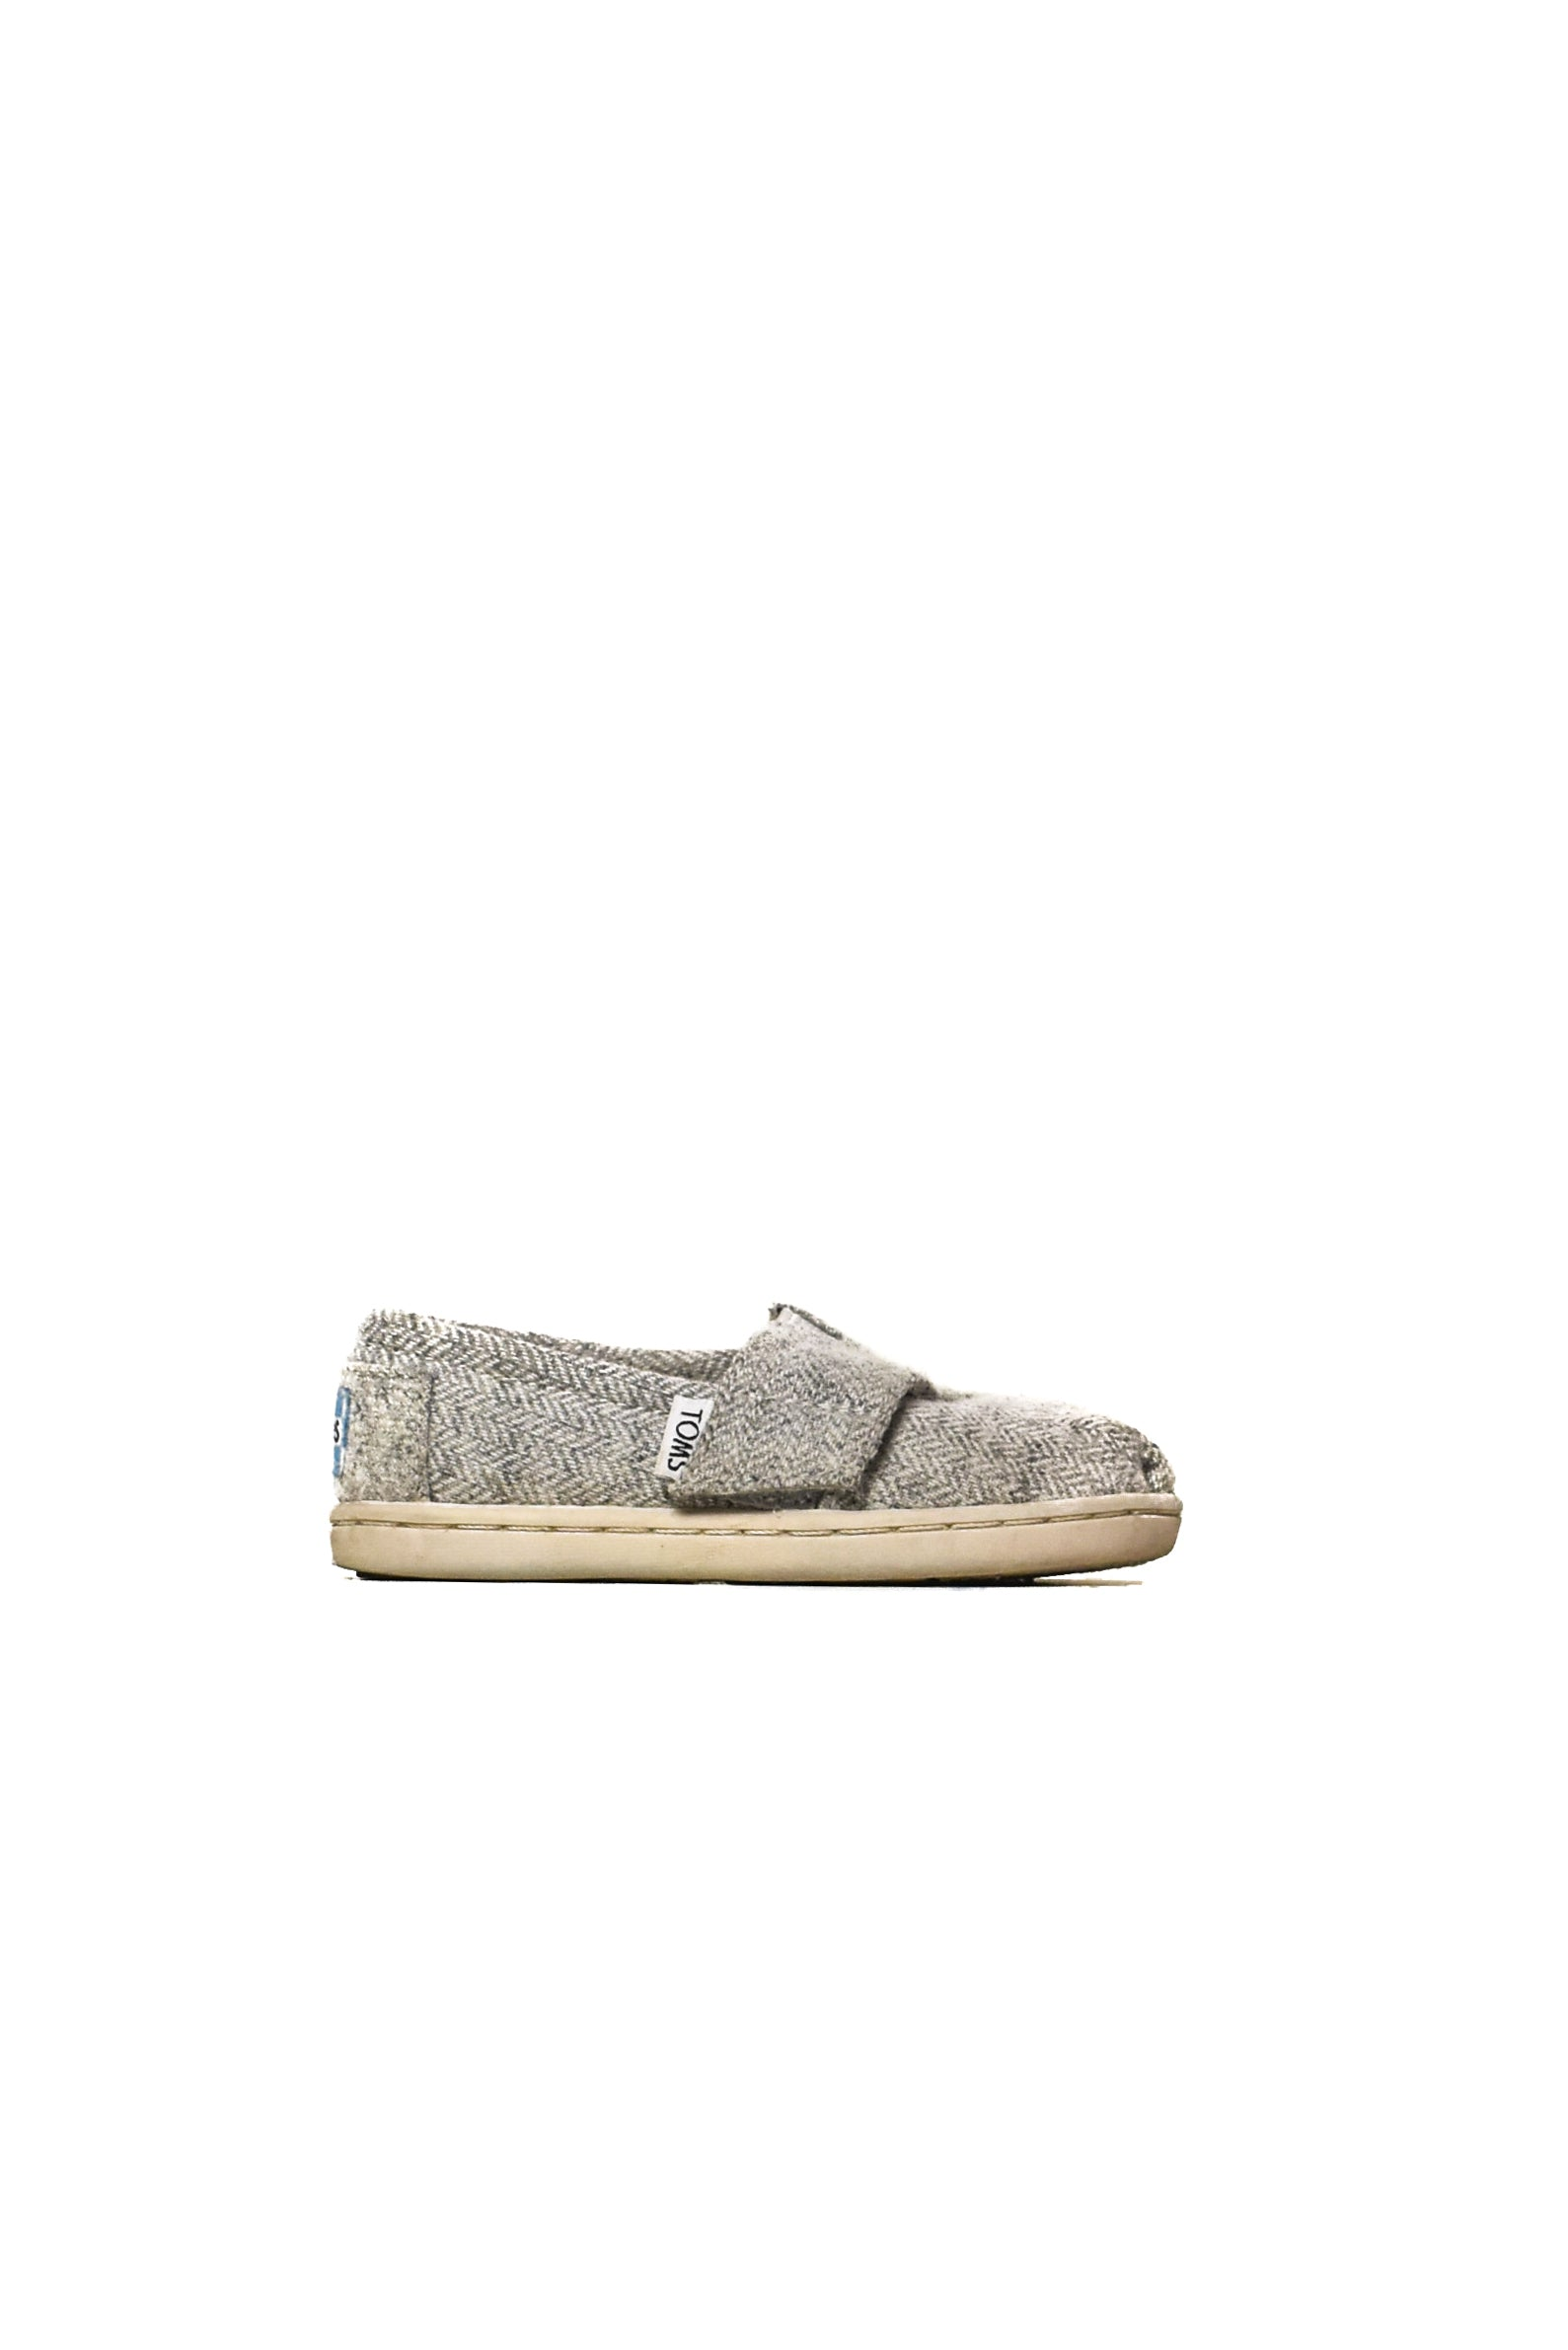 56a1d0730f9 10010707 Toms Baby~Shoes 12-18M (EU 21) at Retykle